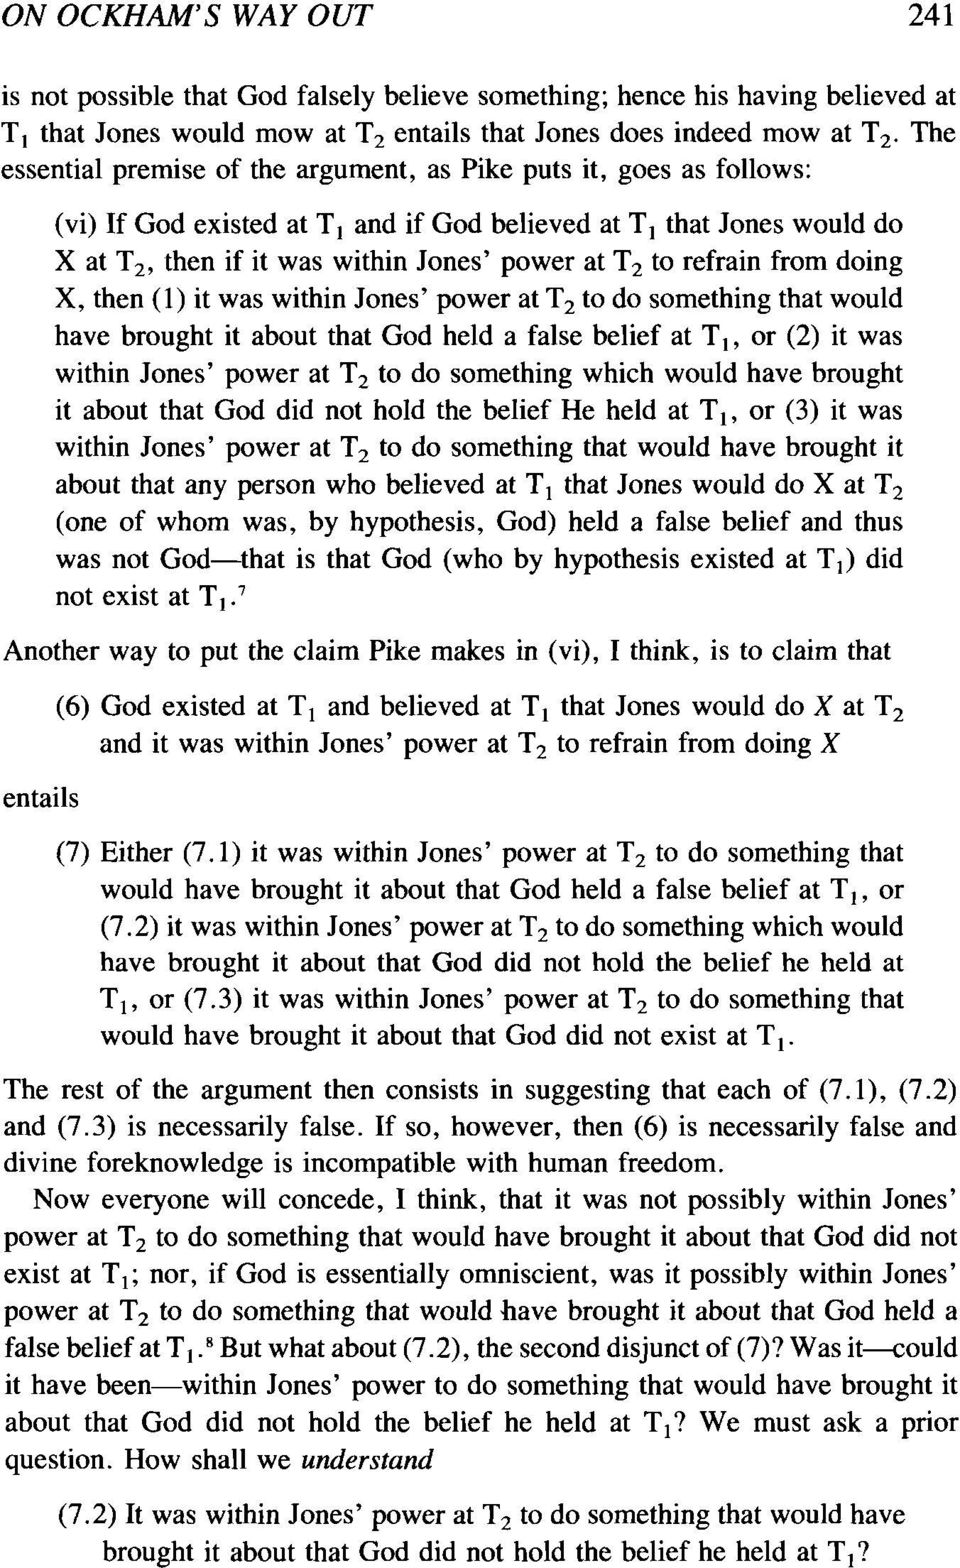 refrain from doing X, then (I) it was within Jones' power at T 2 to do something that would have brought it about that God held a false belief at T I, or (2) it was within Jones' power at T2 to do